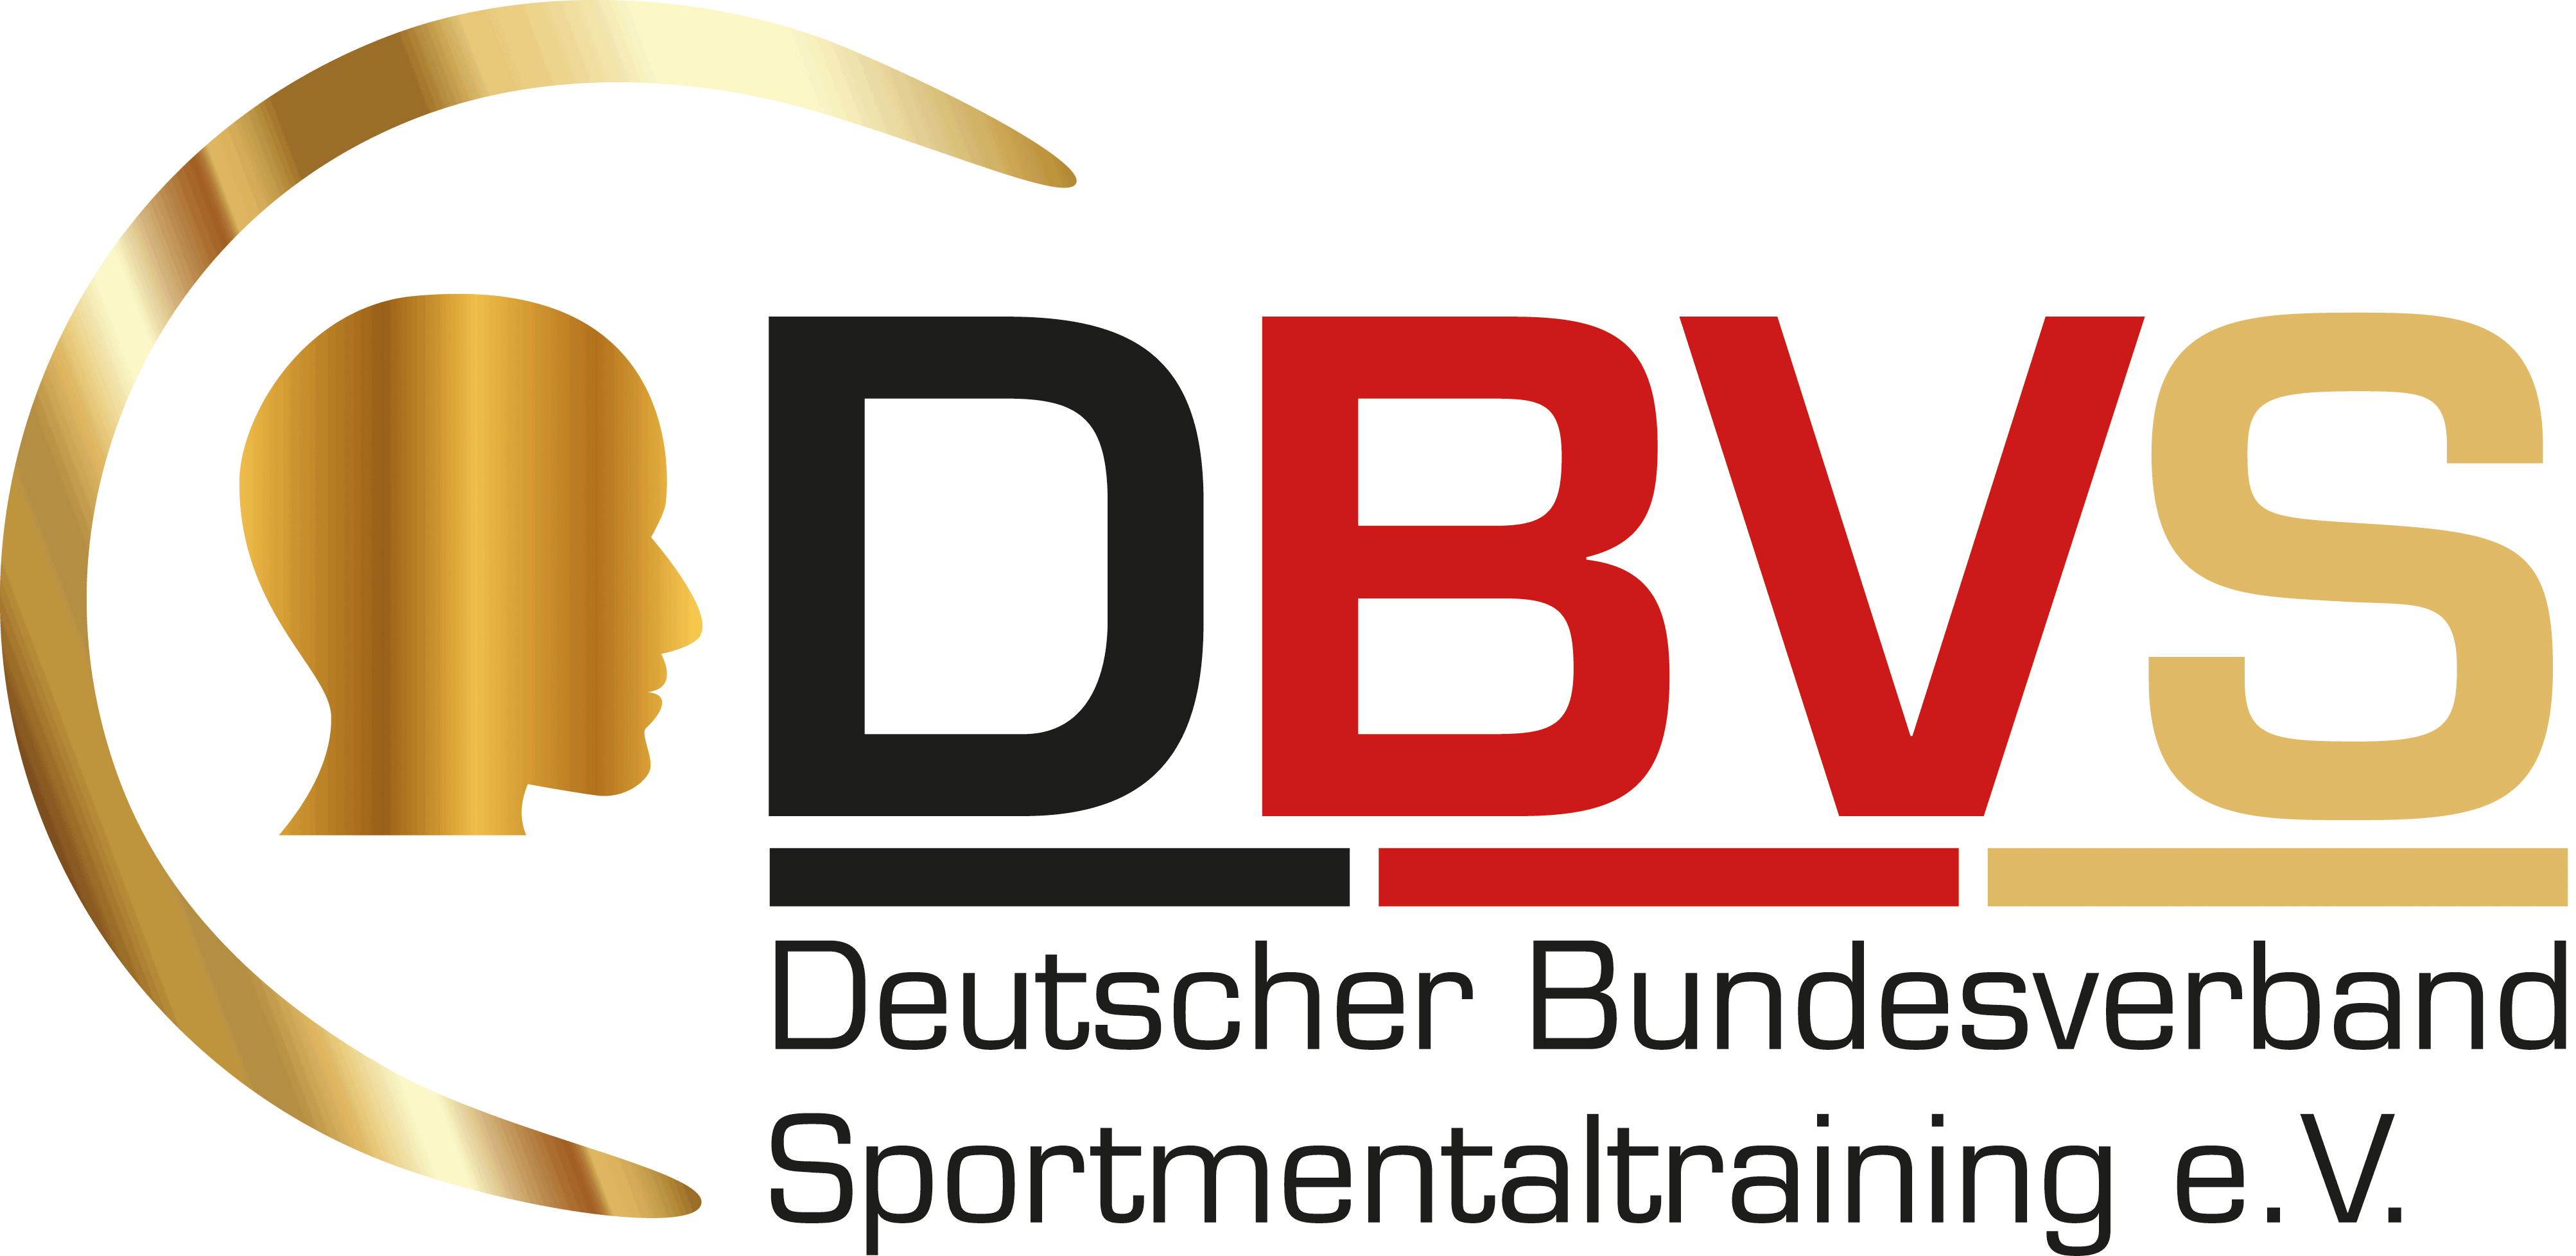 Deutscher Bundesverband Sportmentaltraining e.V.